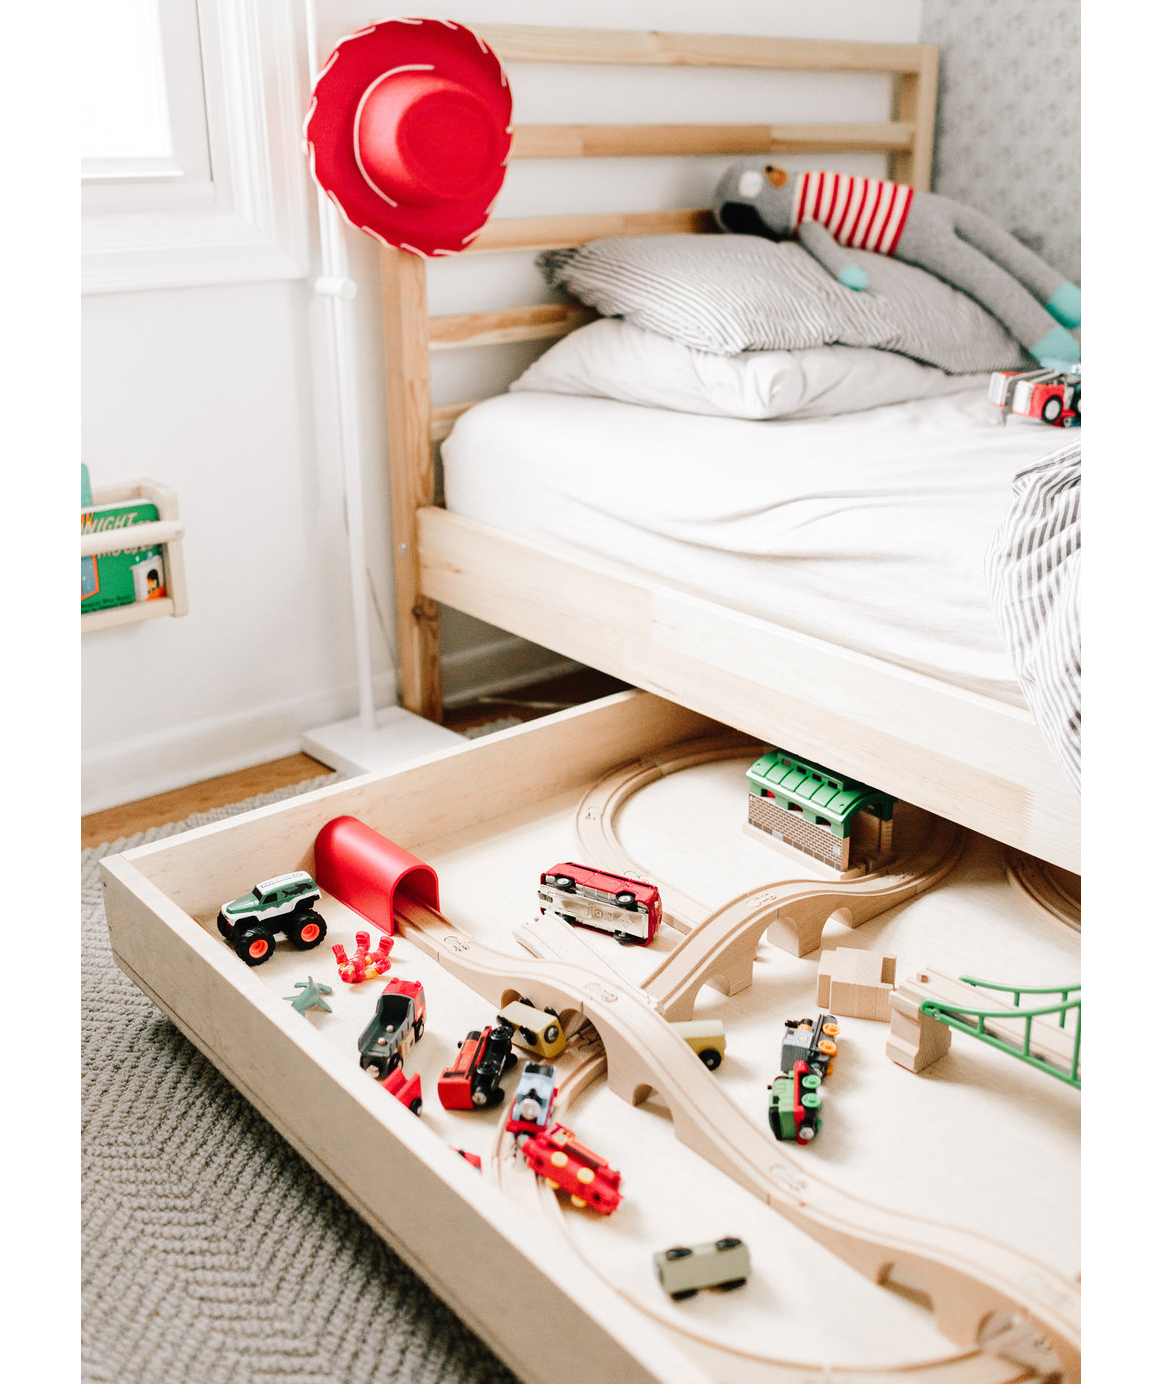 Racetrack under kid's bed